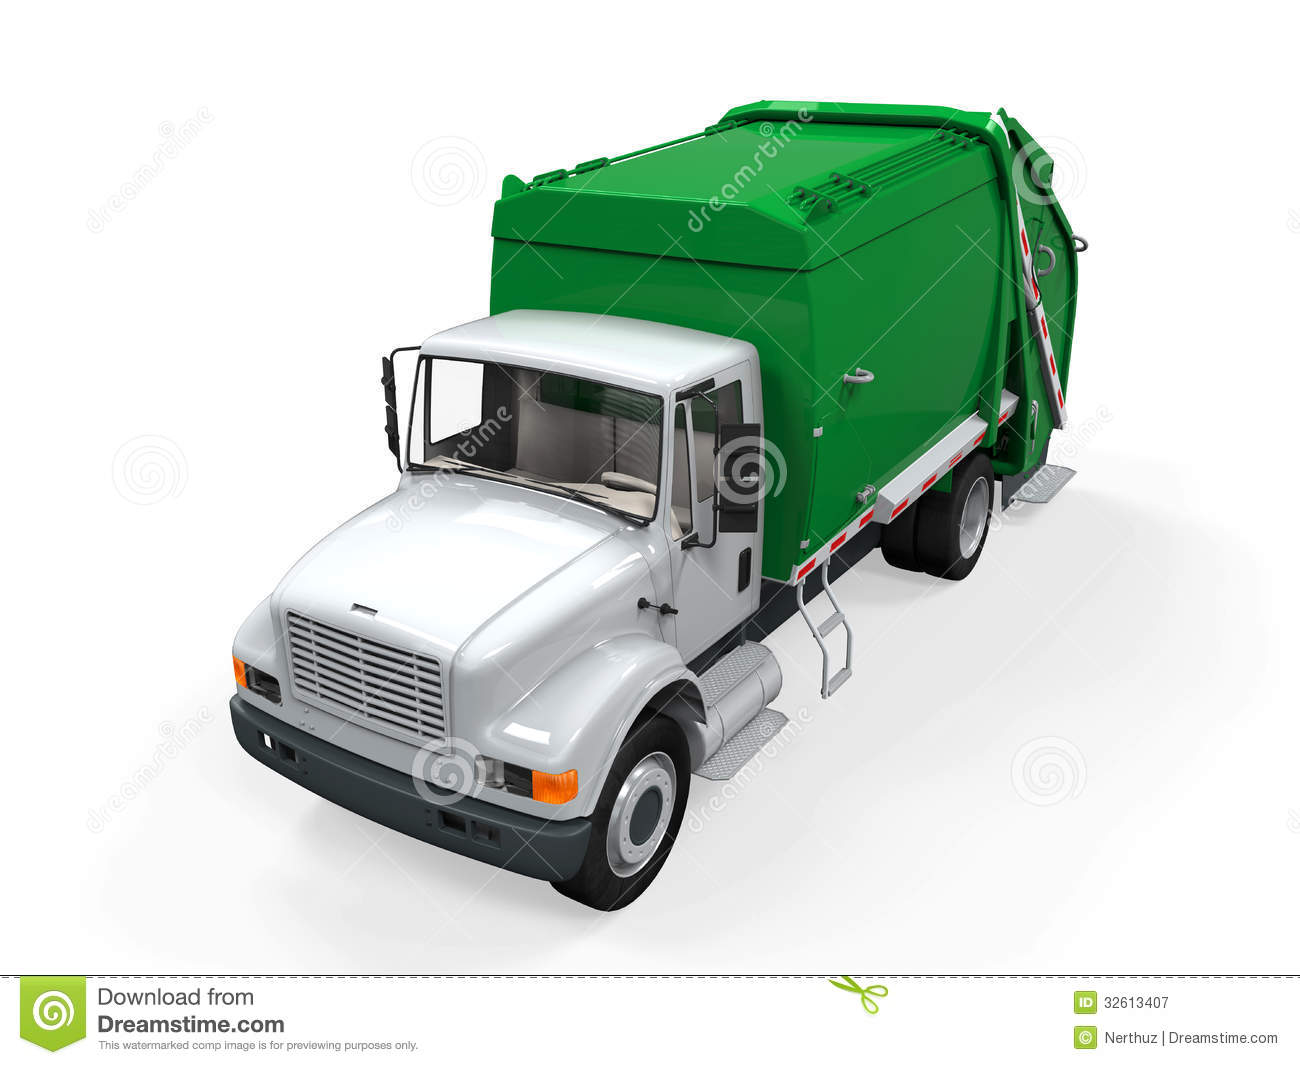 Green Truck Clipart Free Garbage truck on white